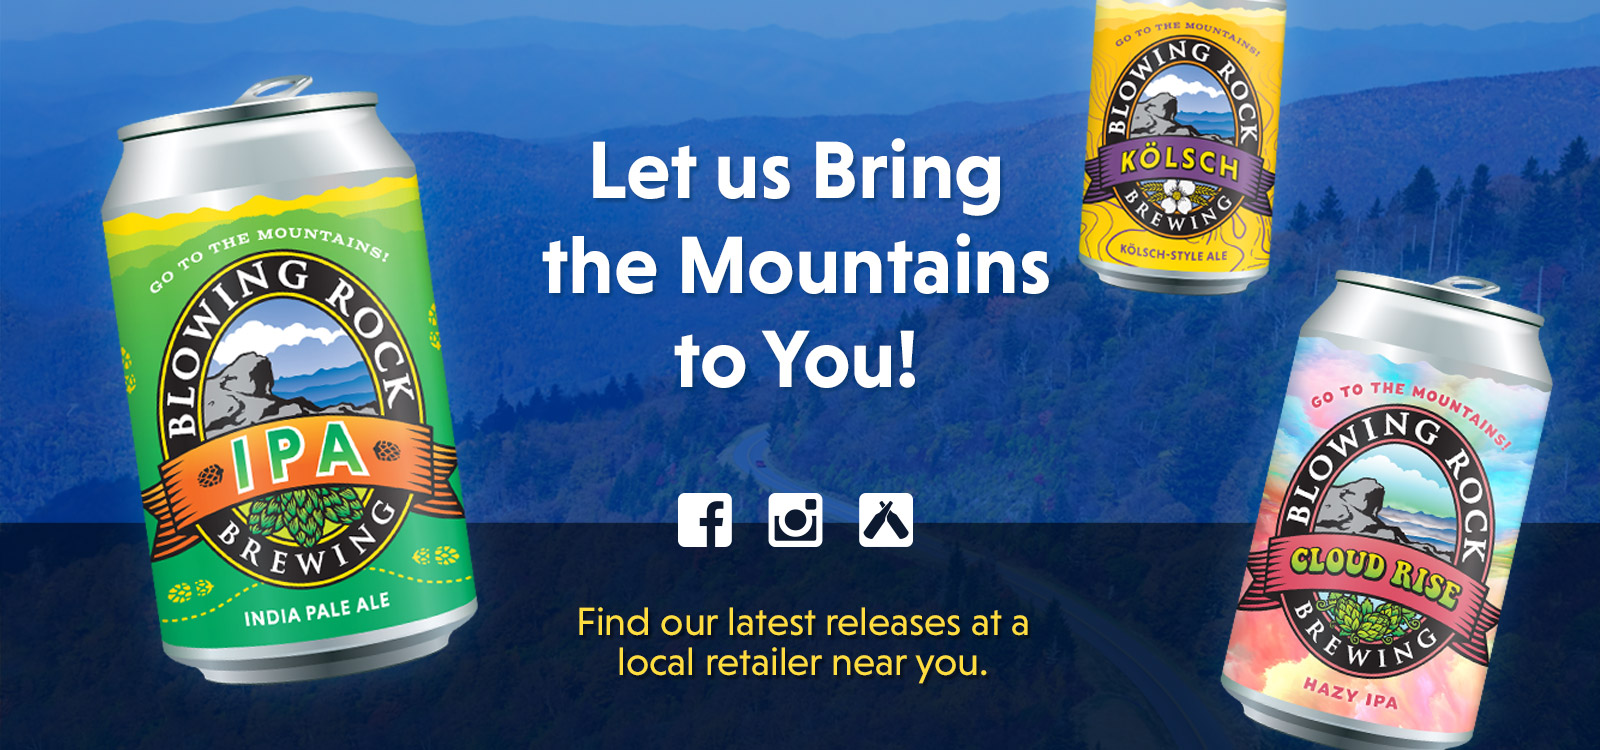 Let us bring the mountains to you!